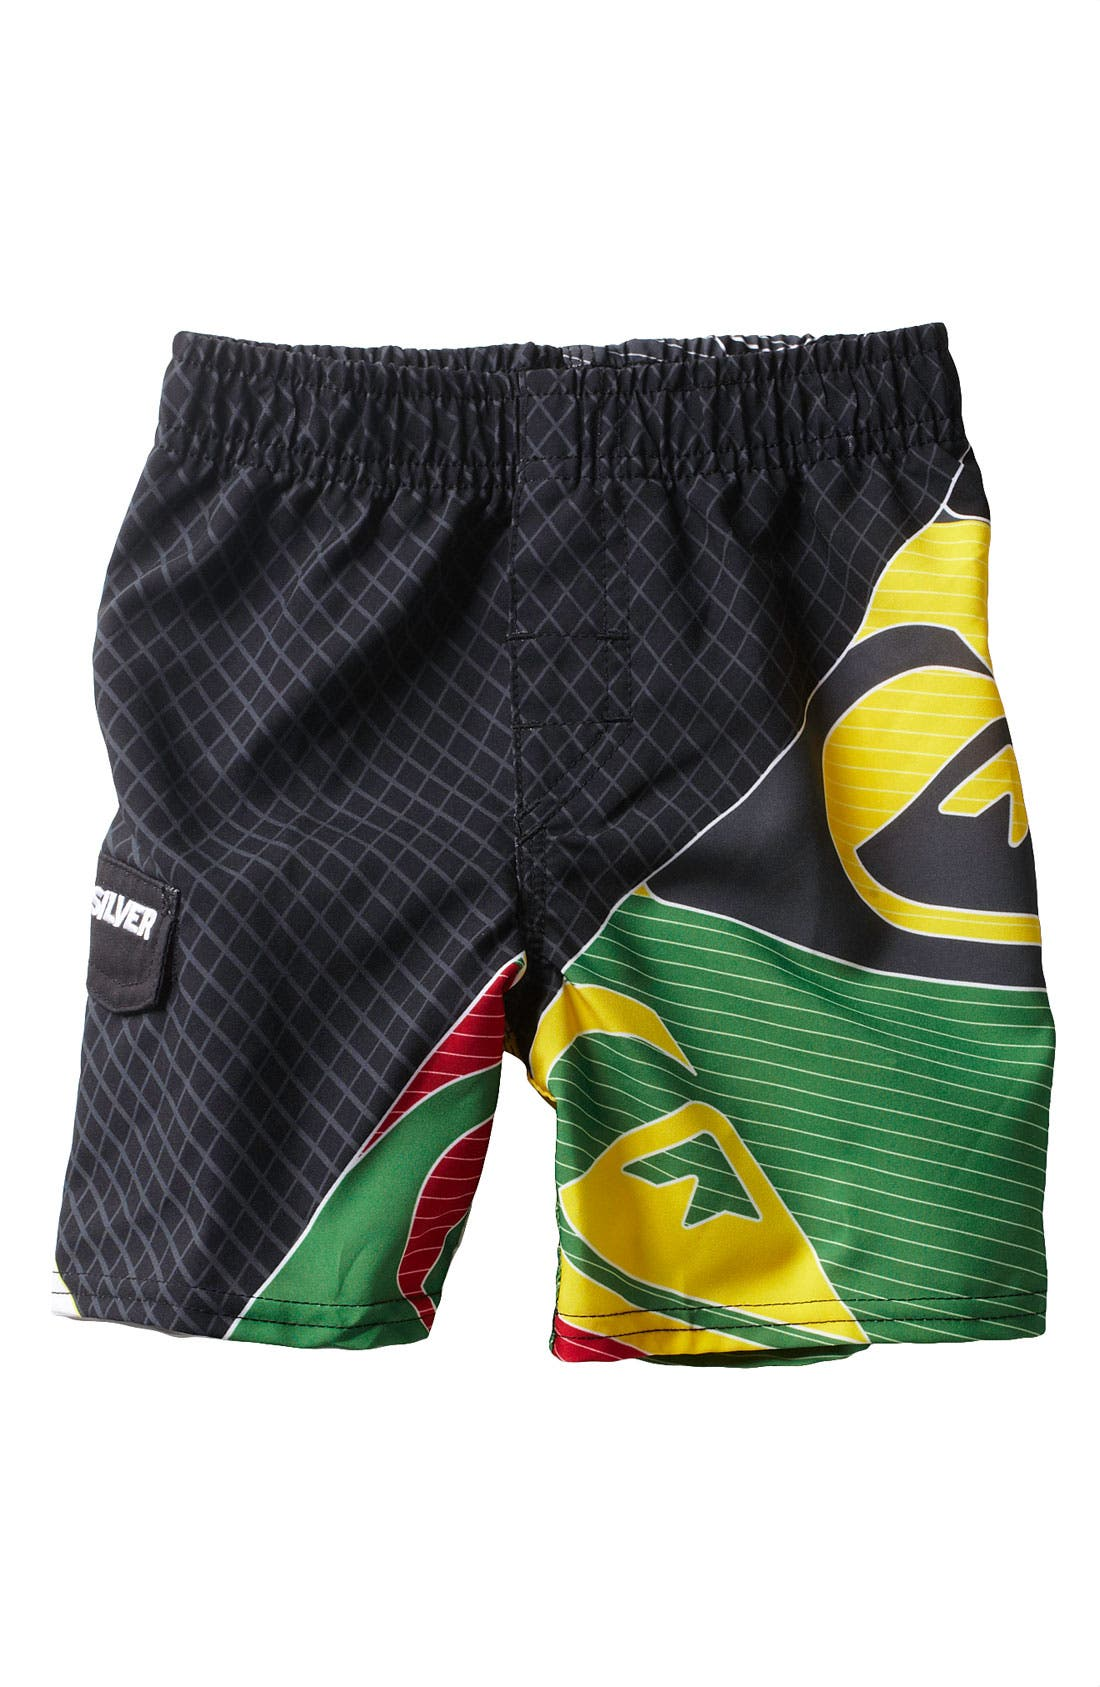 Alternate Image 1 Selected - Quiksilver 'Finish Line' Volley Shorts (Toddler)